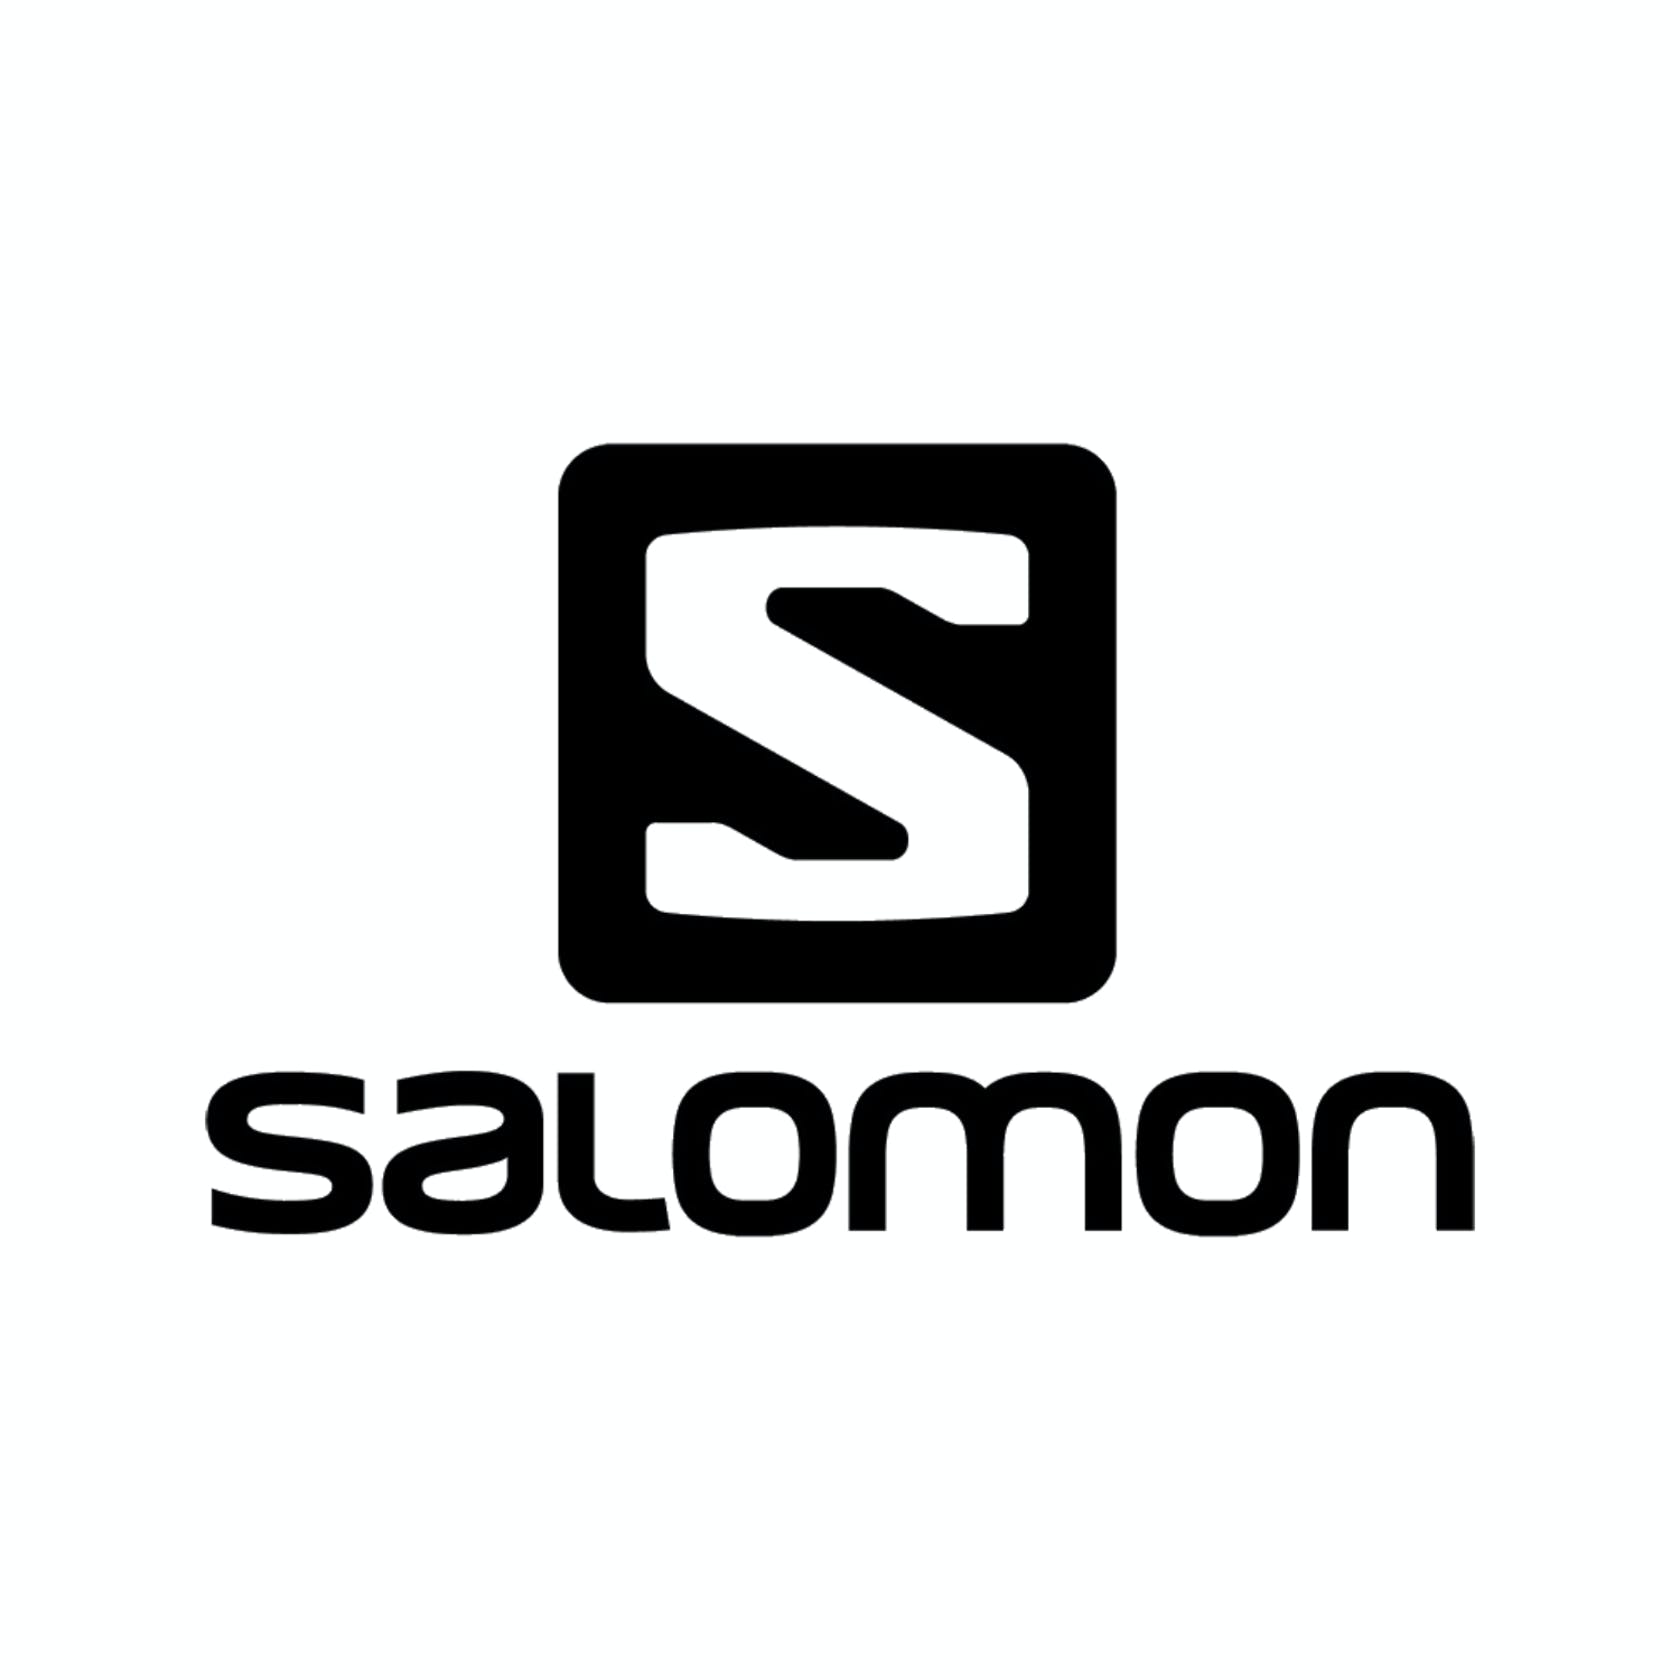 Salomon Onlineshop